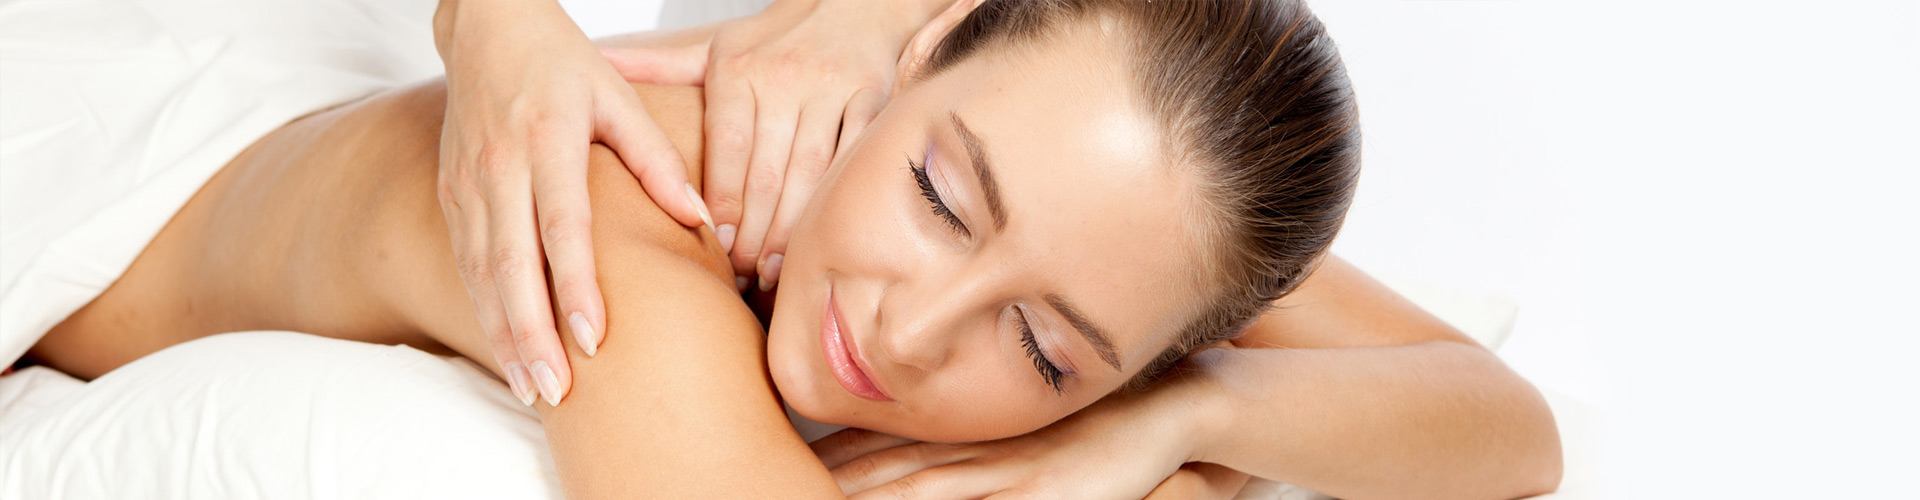 Body Massage Flawless Faces | Stamford Clinic